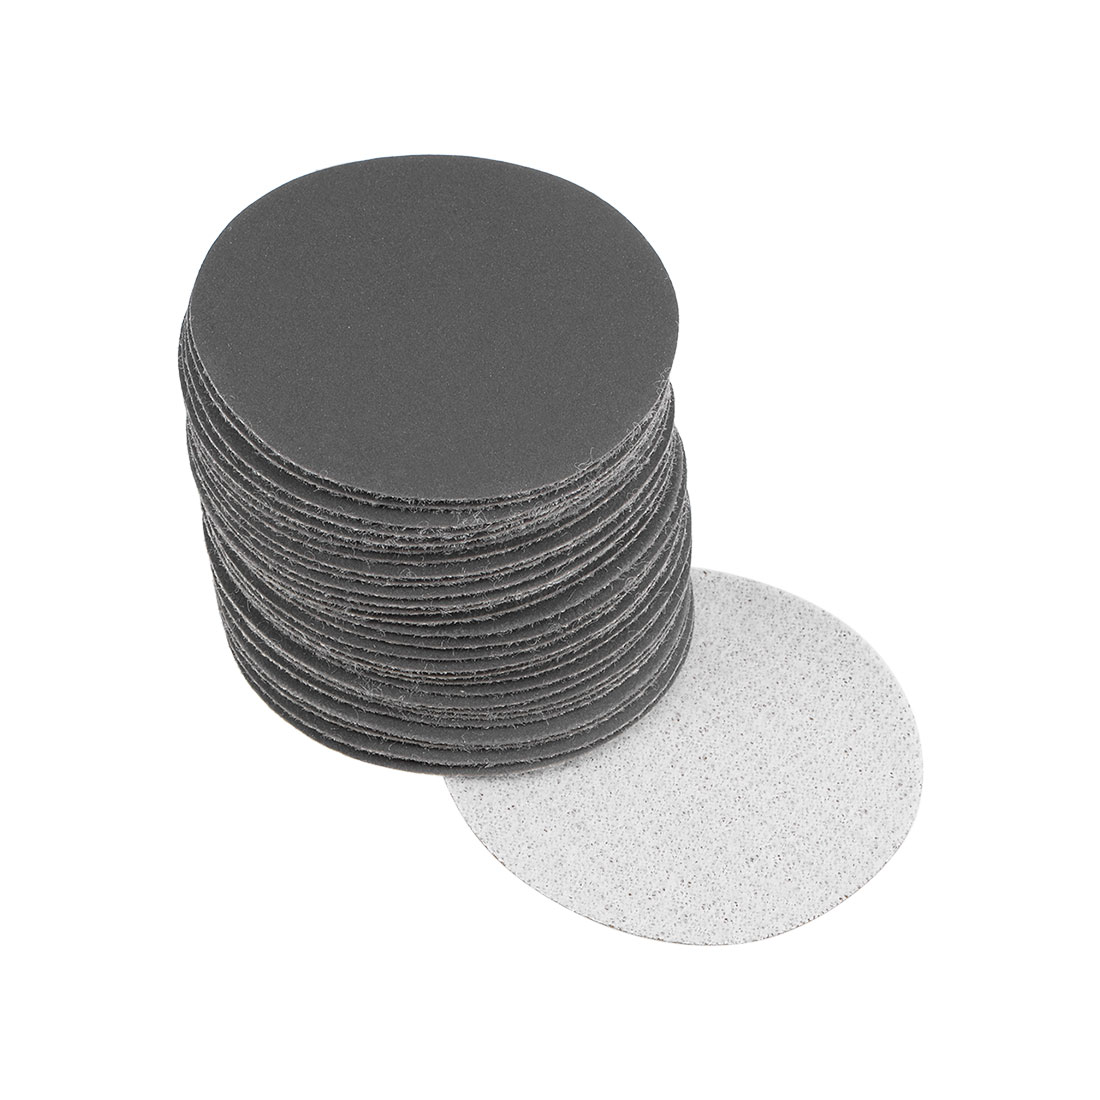 2 inch Wet Dry Discs 800 Grit Hook and Loop Sanding Disc Silicon Carbide 30pcs